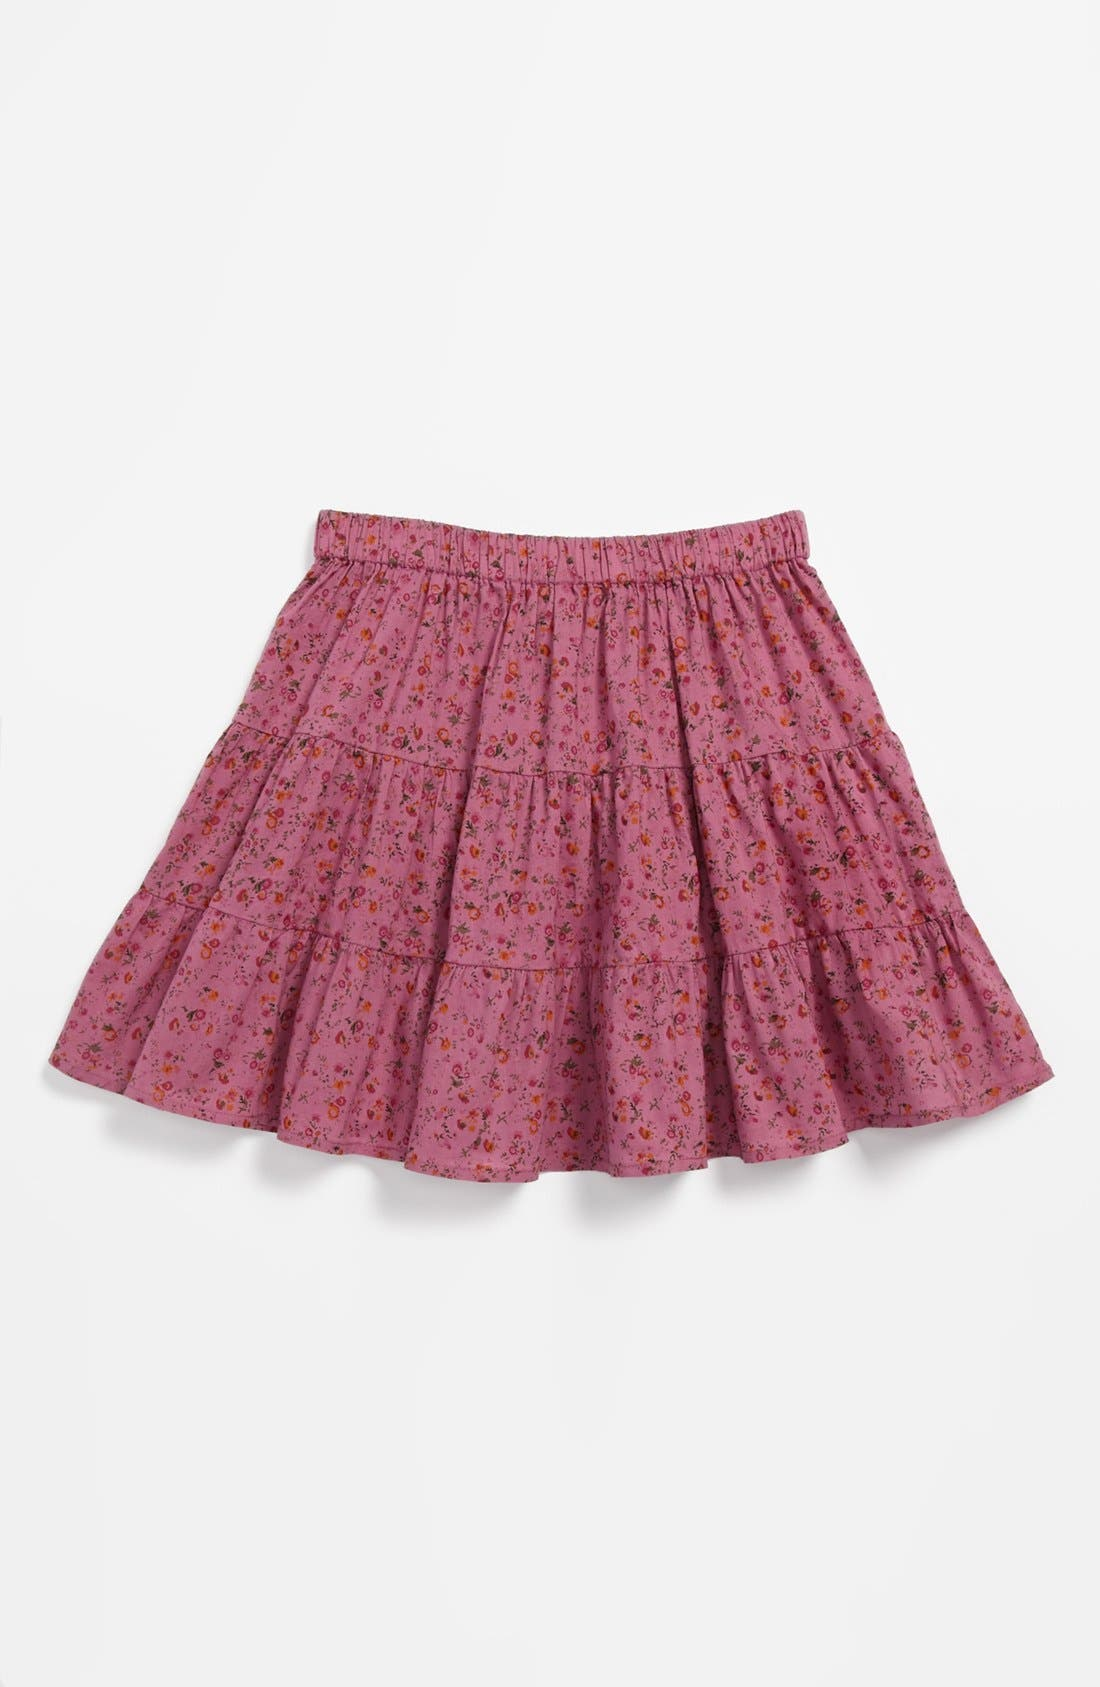 Main Image - Peek 'Alli' Skirt (Toddler Girls, Little Girls & Big Girls)